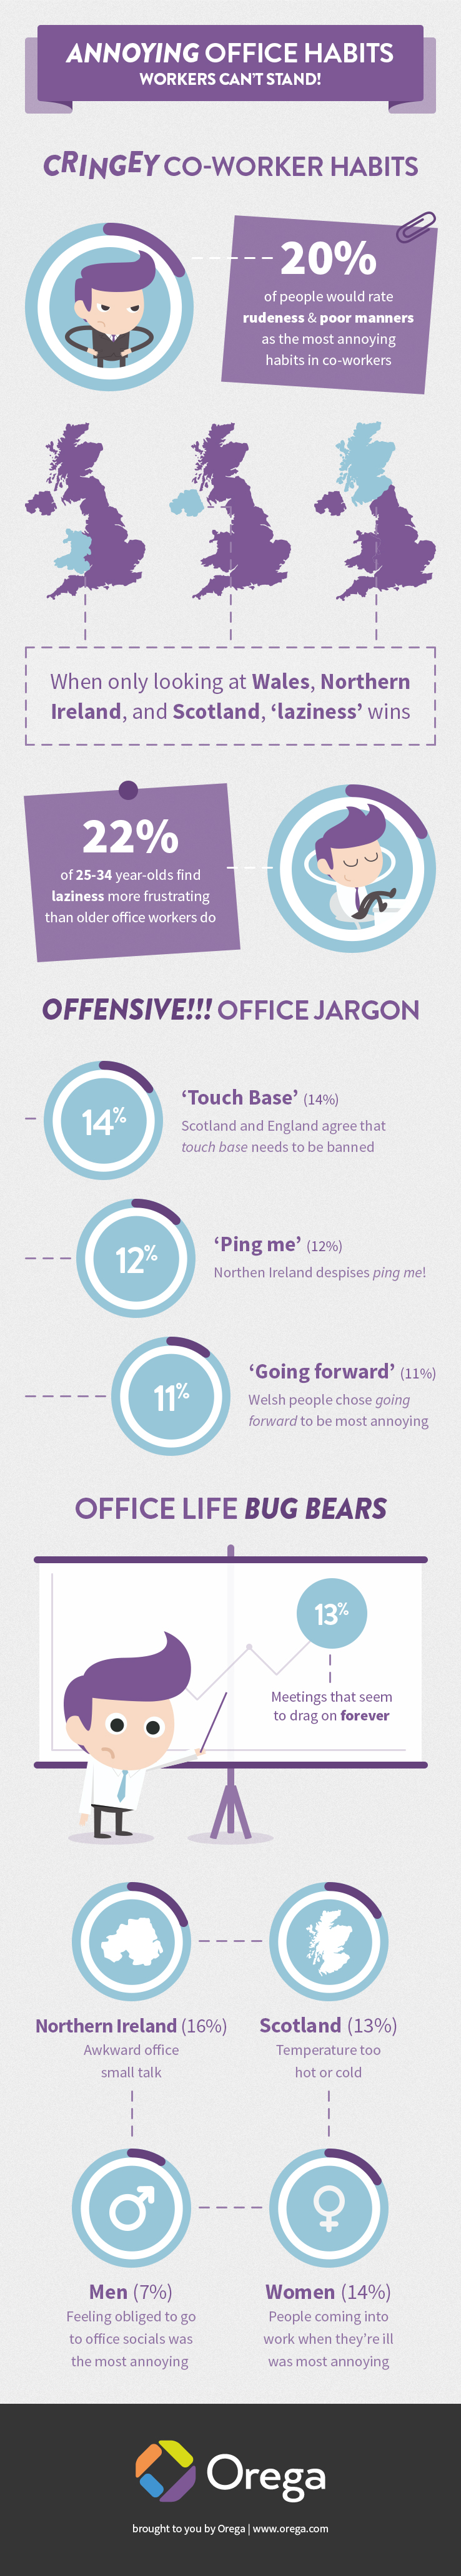 annoying office habits workers cant stand